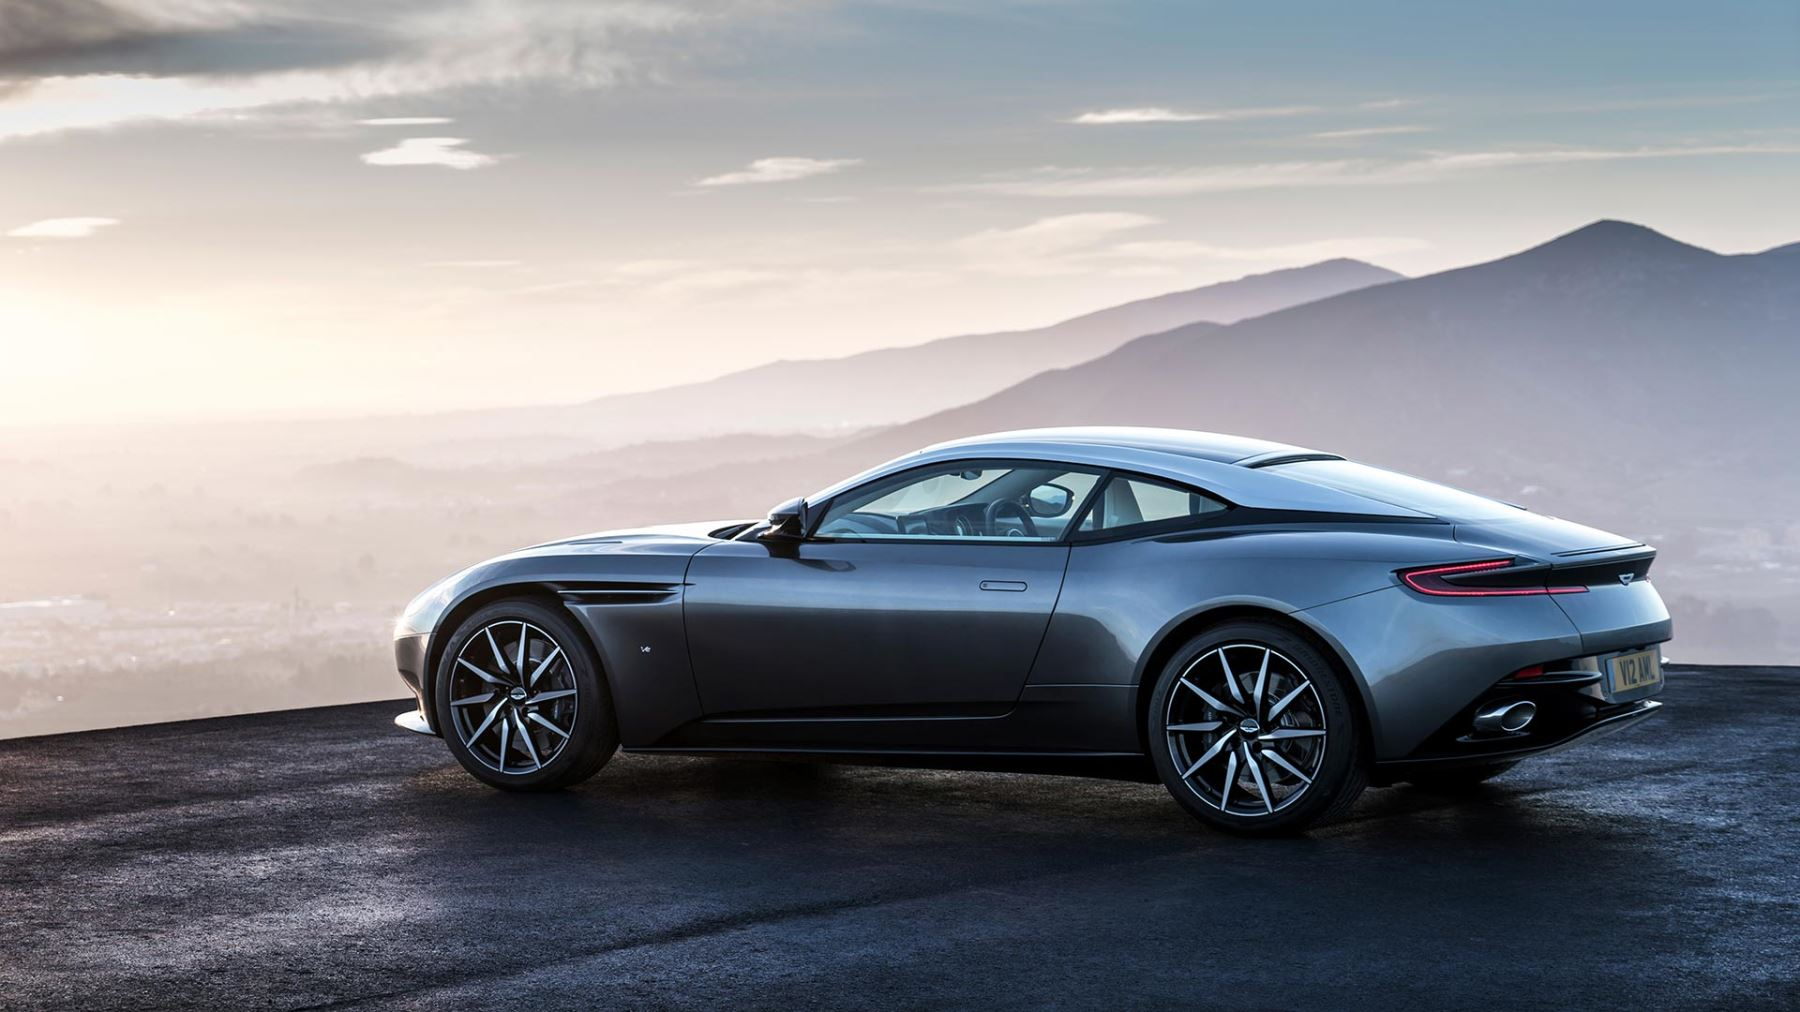 Aston Martin DB11 V12 with 5 years free servicing* image 3